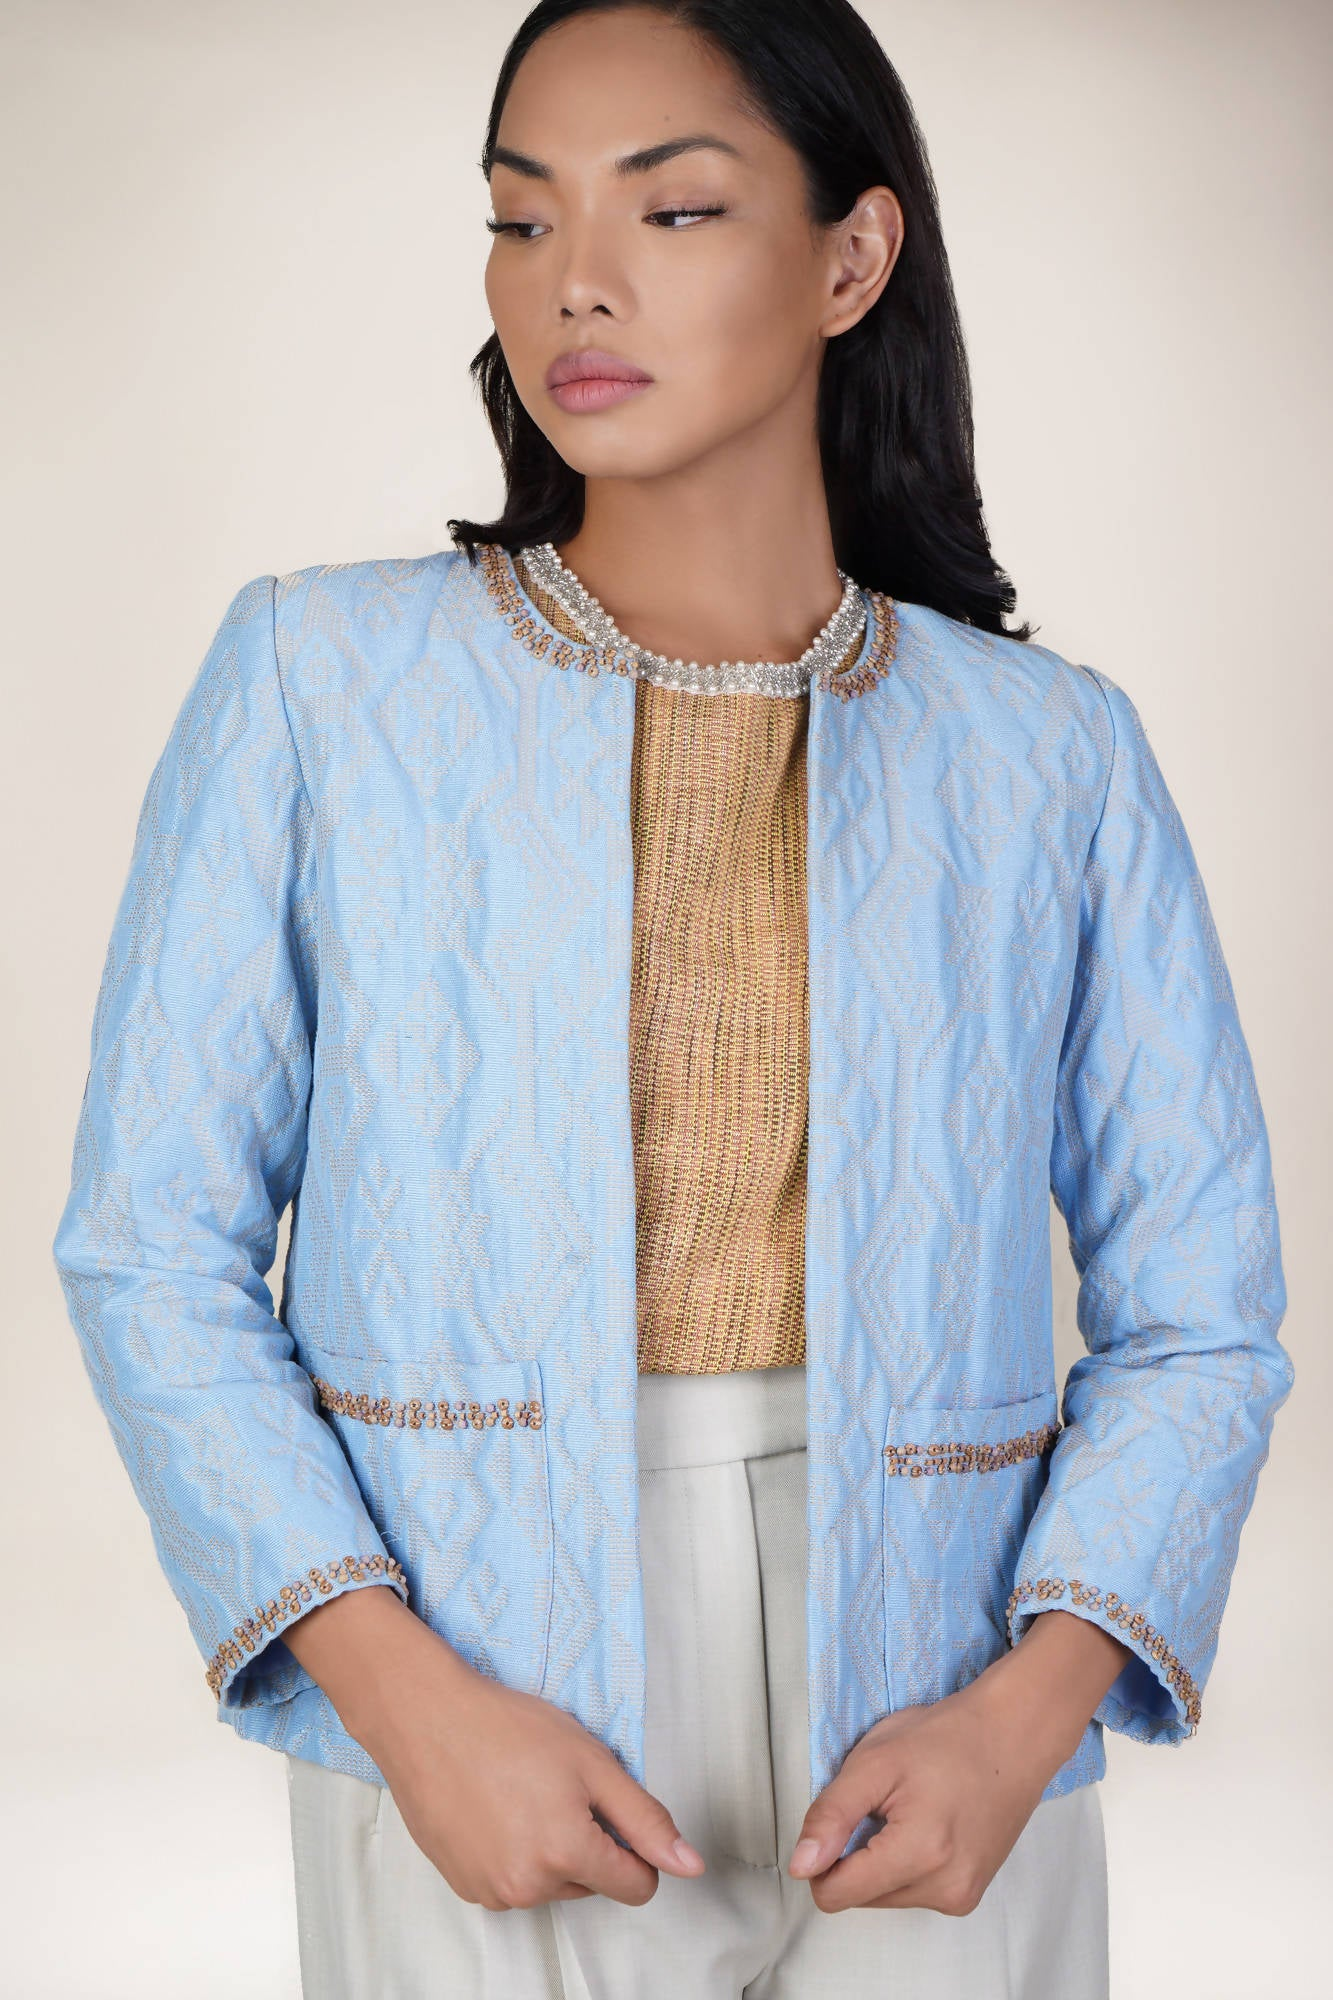 Maharlika Jacket in Light Blue/Beige